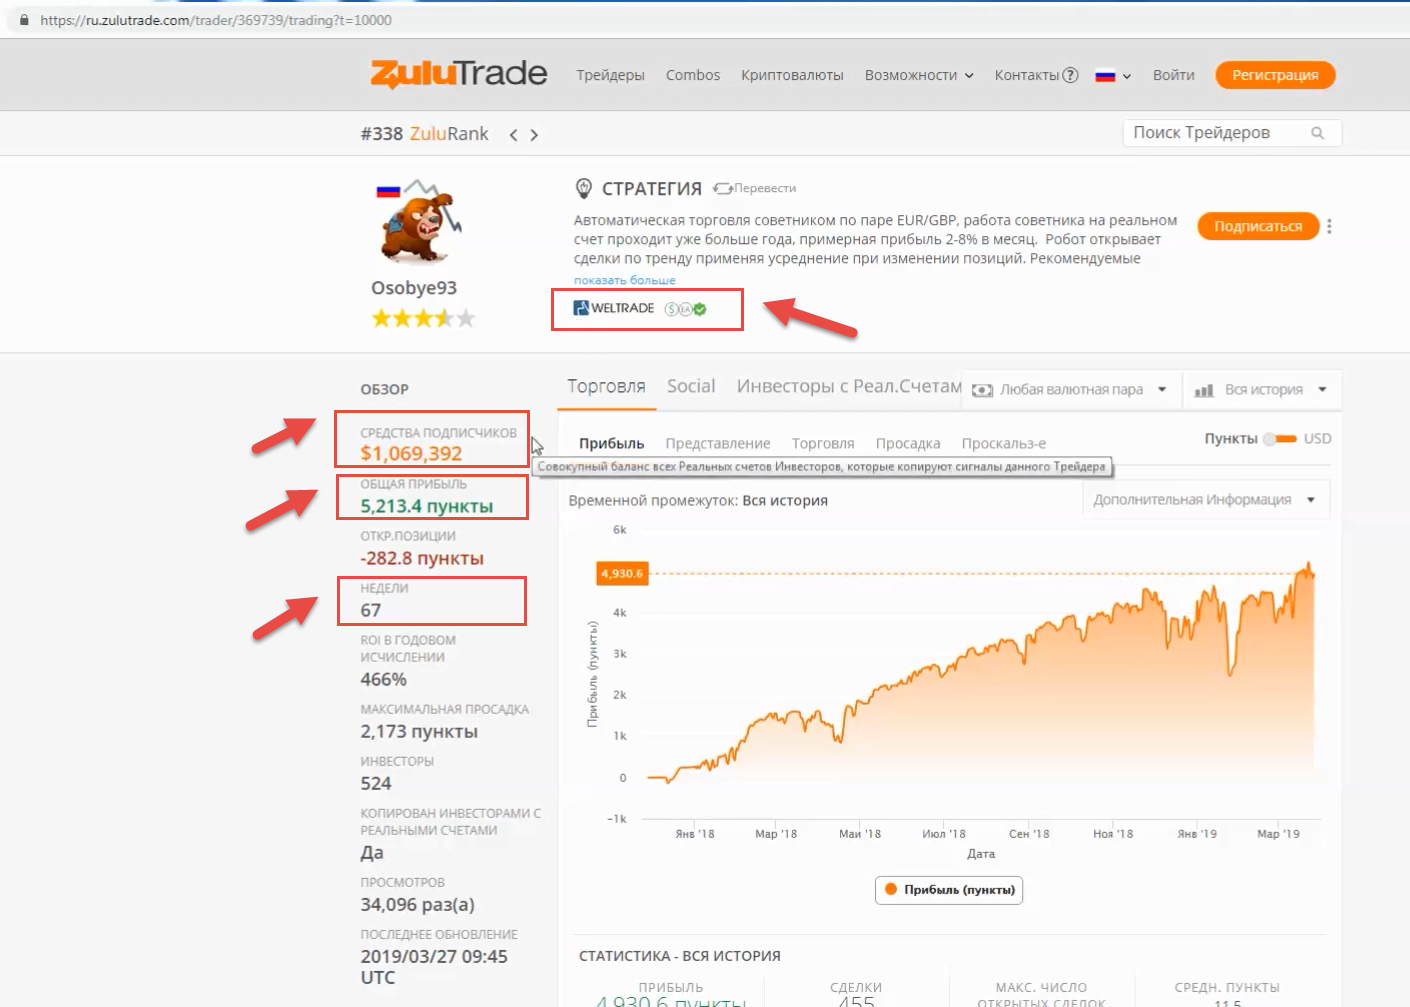 Traders rating on ZuluTrade